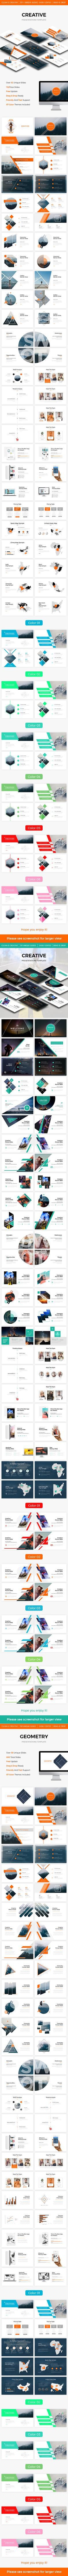 Bundle 3 in 1 Creative Powerpoint Template